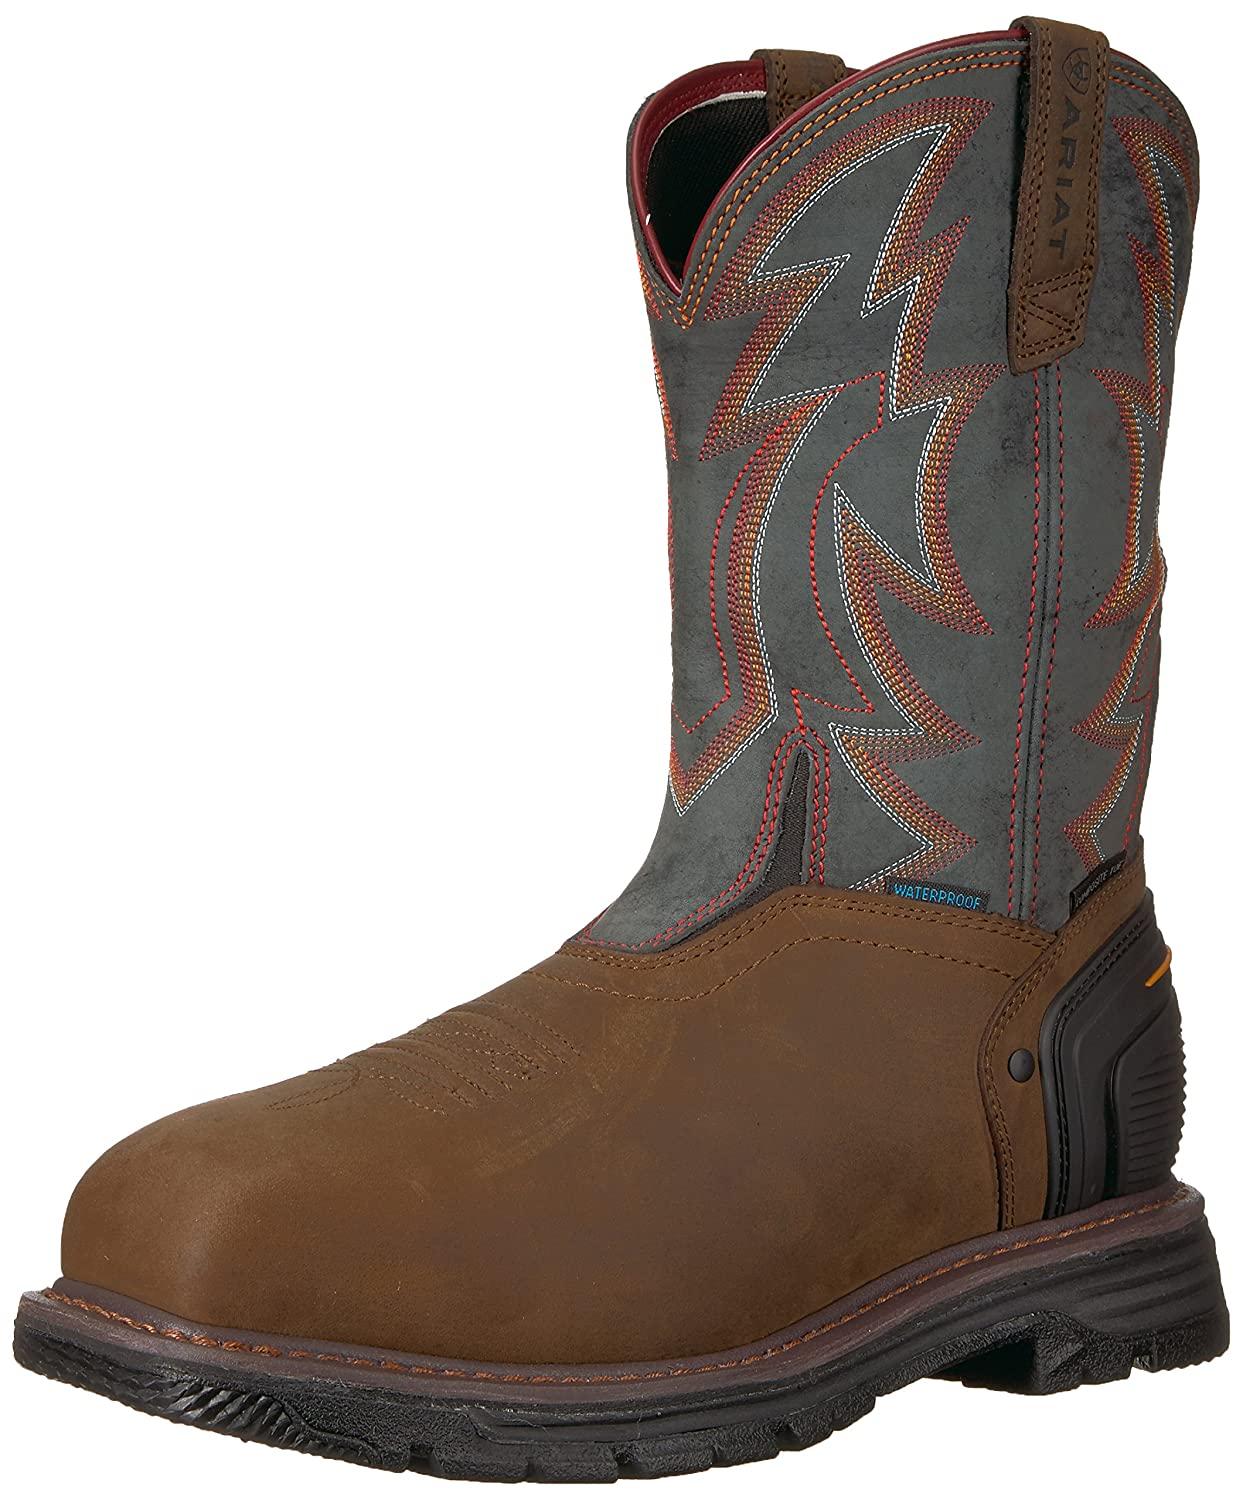 Ariat Work メンズ Catalyst Thunder H2O Composite Toe B076RCXDQW  Oily Distressed Brown/Storm 10 E US